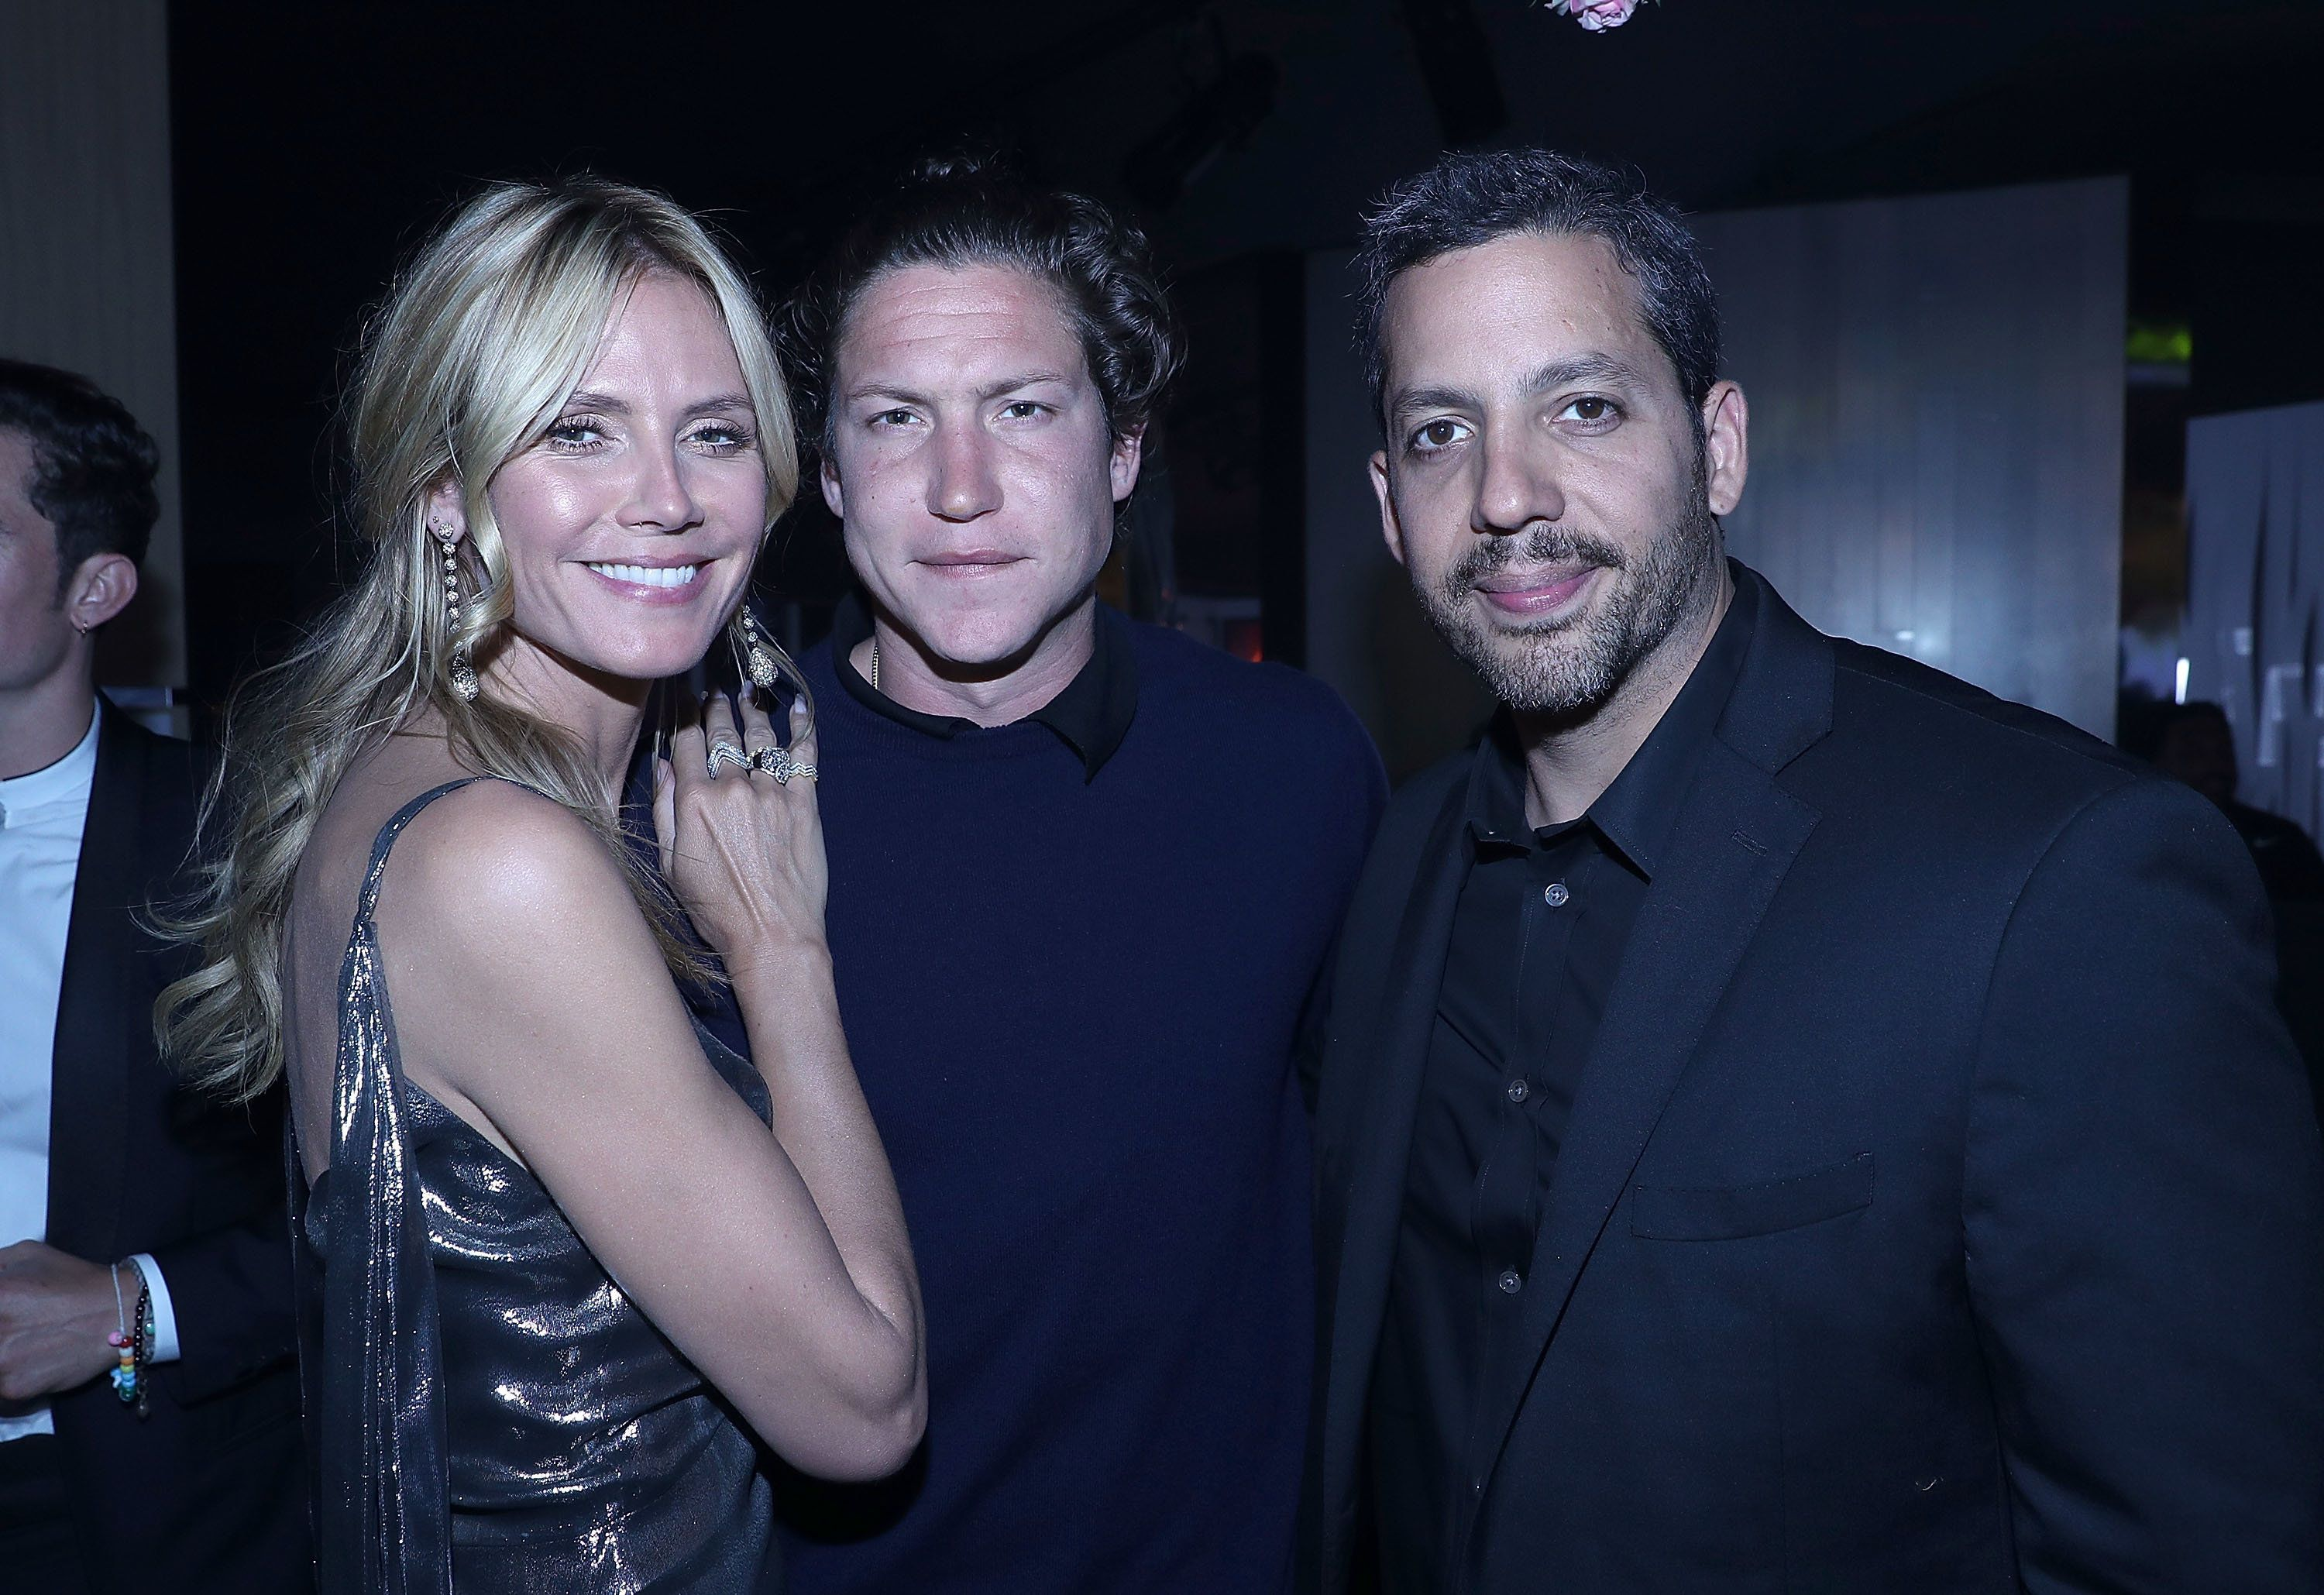 CANNES, FRANCE - MAY 16:  Heidi Klum, Vito Schnabel and David Blaine attend The Harmonist Cocktail Party during The 69th Annual Cannes Film Festival at Plage du Grand Hyatt on May 16, 2016 in Cannes.  (Photo by Andreas Rentz/Getty Images for The Harmonist)